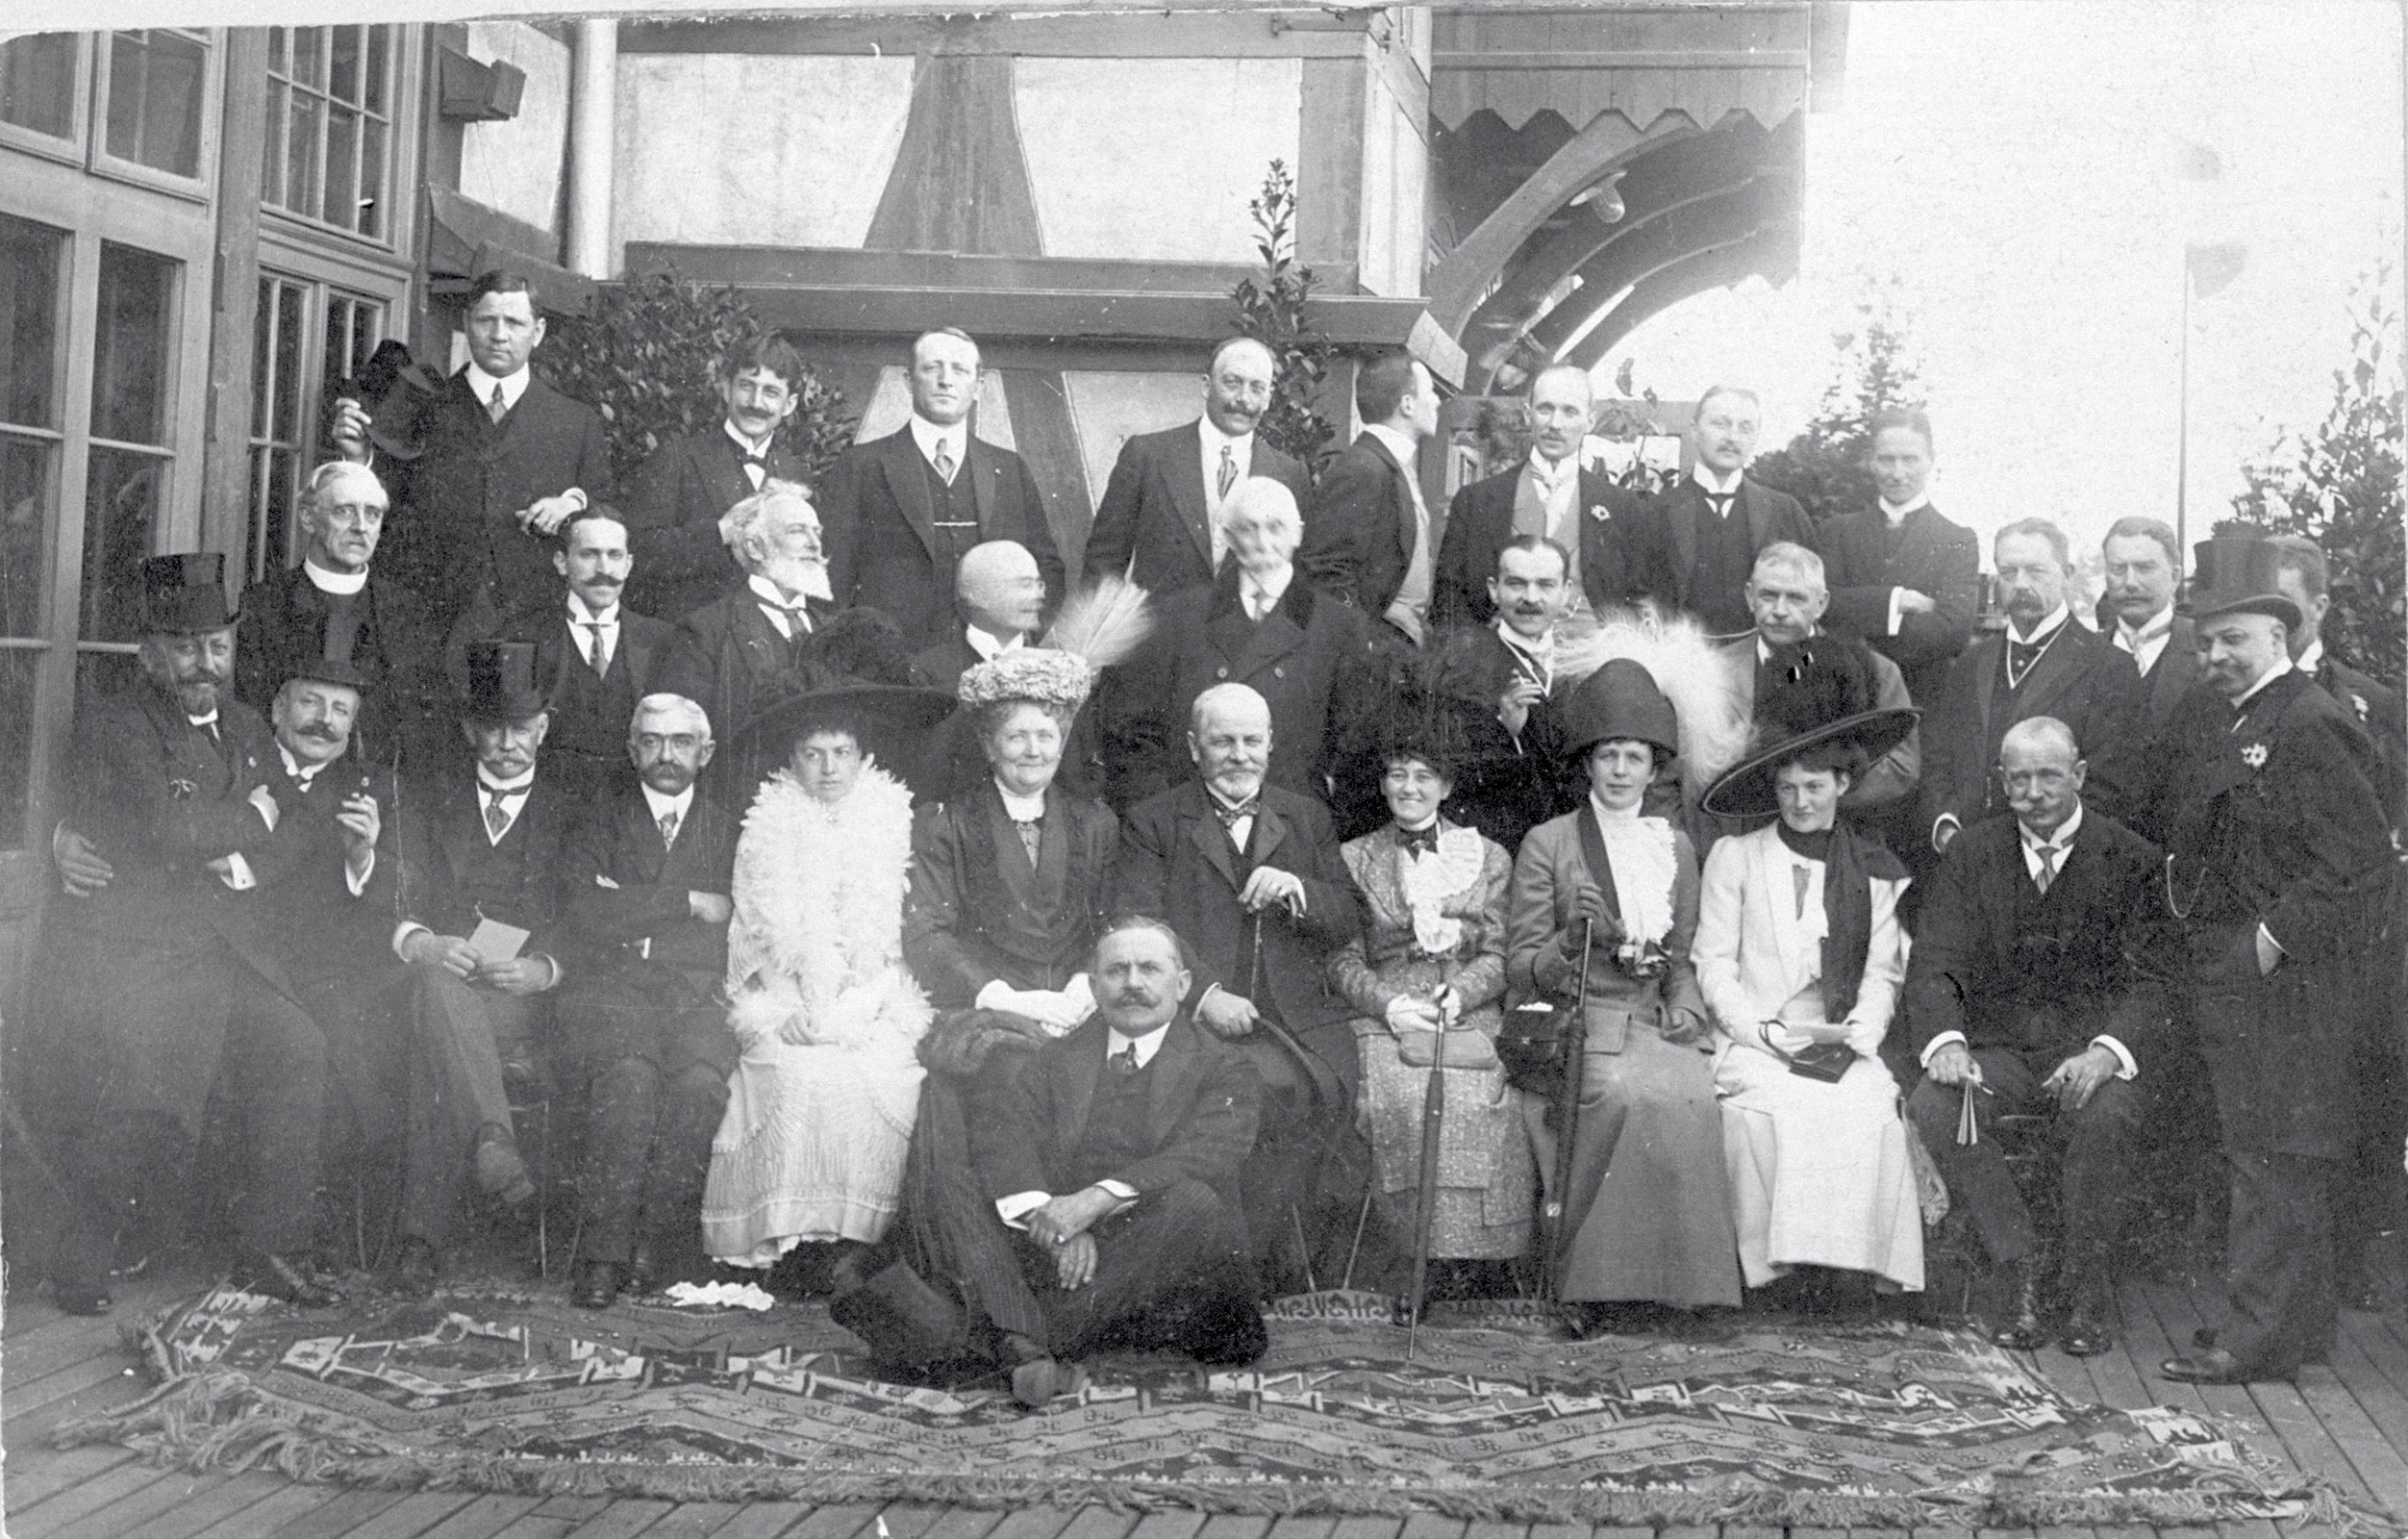 14th IOC Session, Budapest, 1911 - The IOC Members.